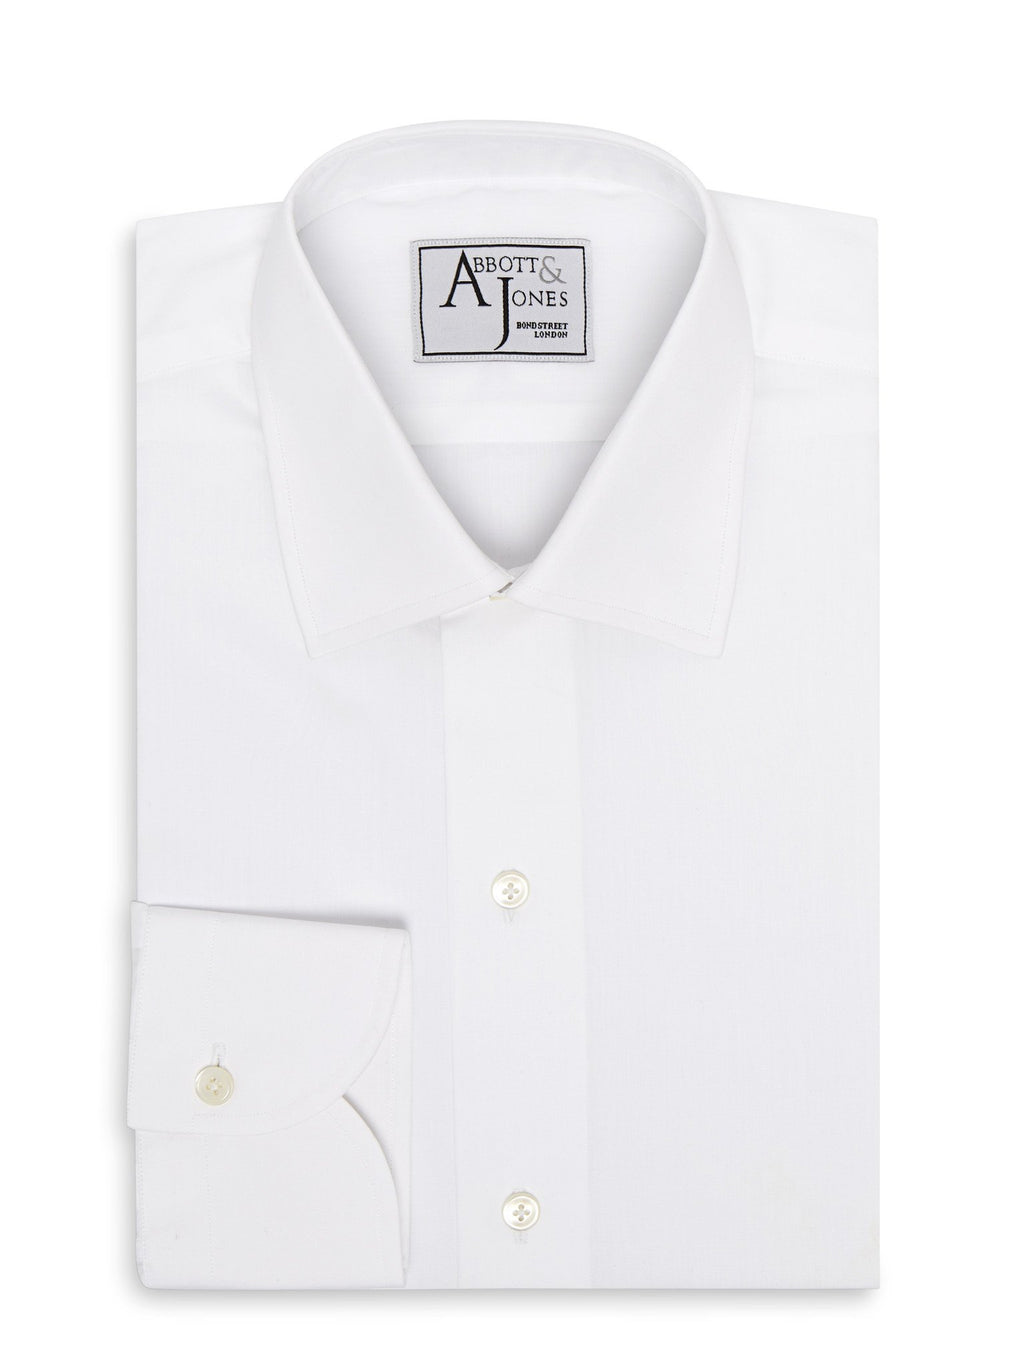 Bespoke - The Essential White Shirt